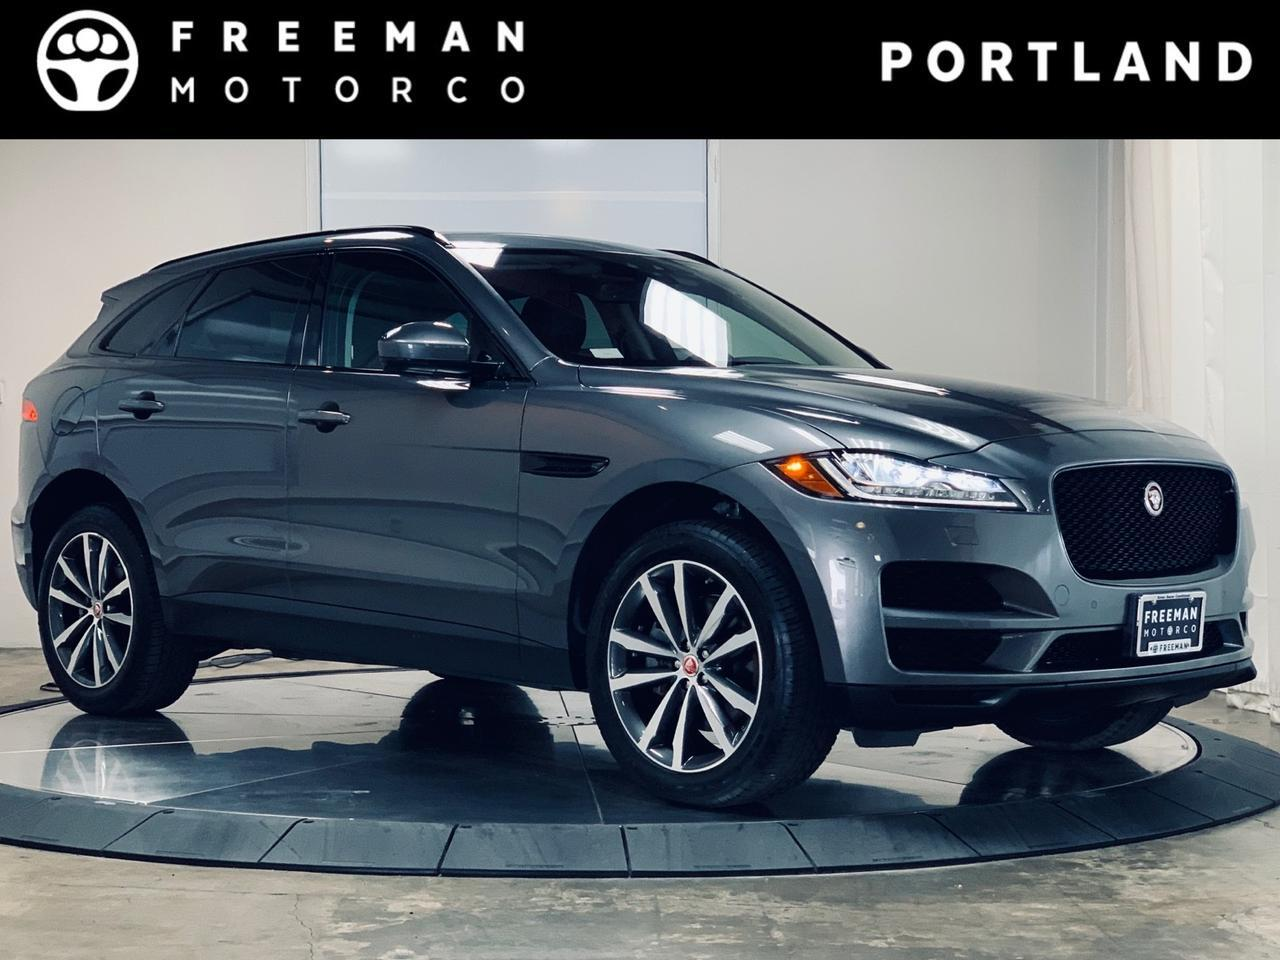 2018 Jaguar F-PACE 30t Prestige Panorama Blind Spot Monitoring Portland OR